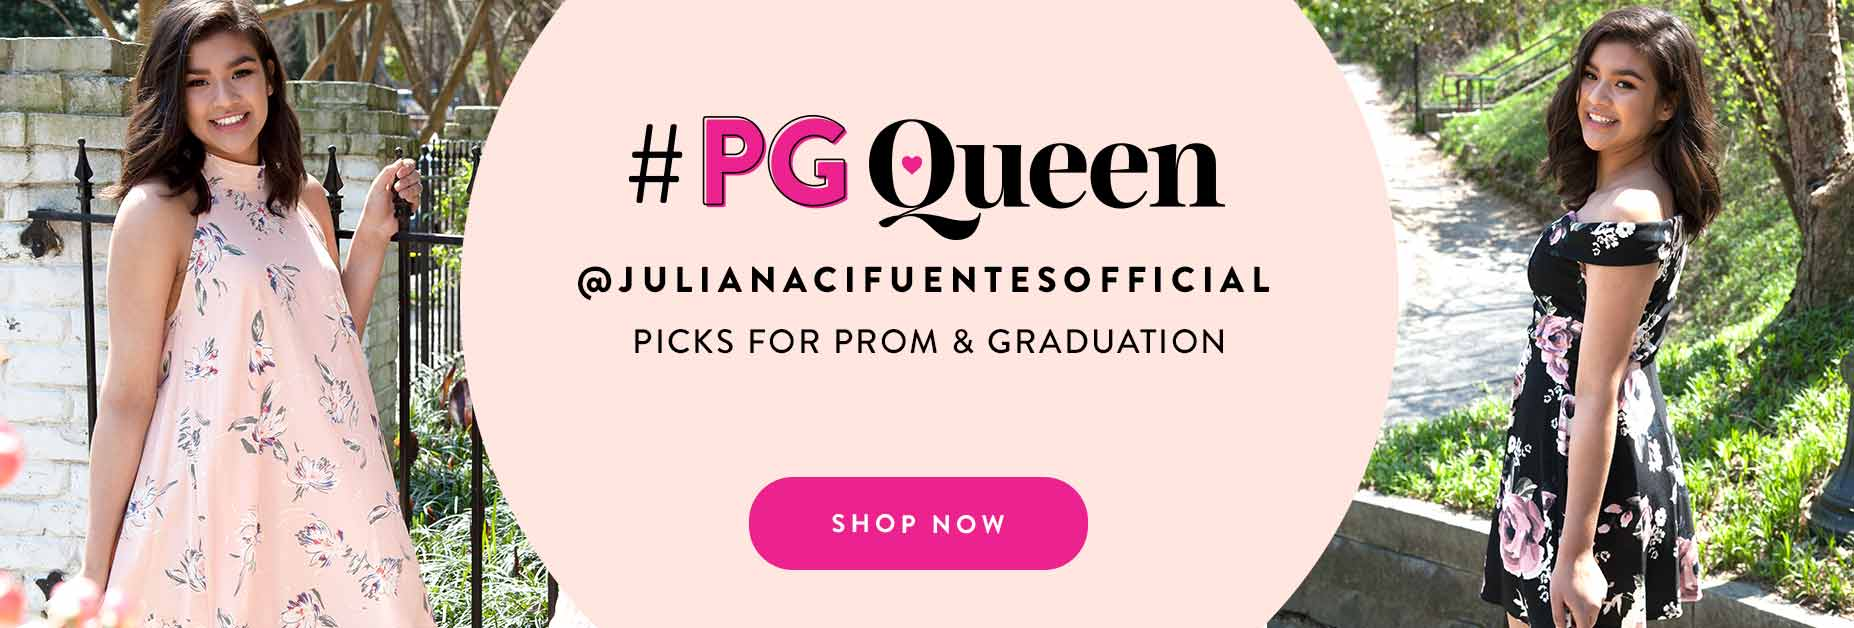 #PGQueen @julianacifuentesofficial